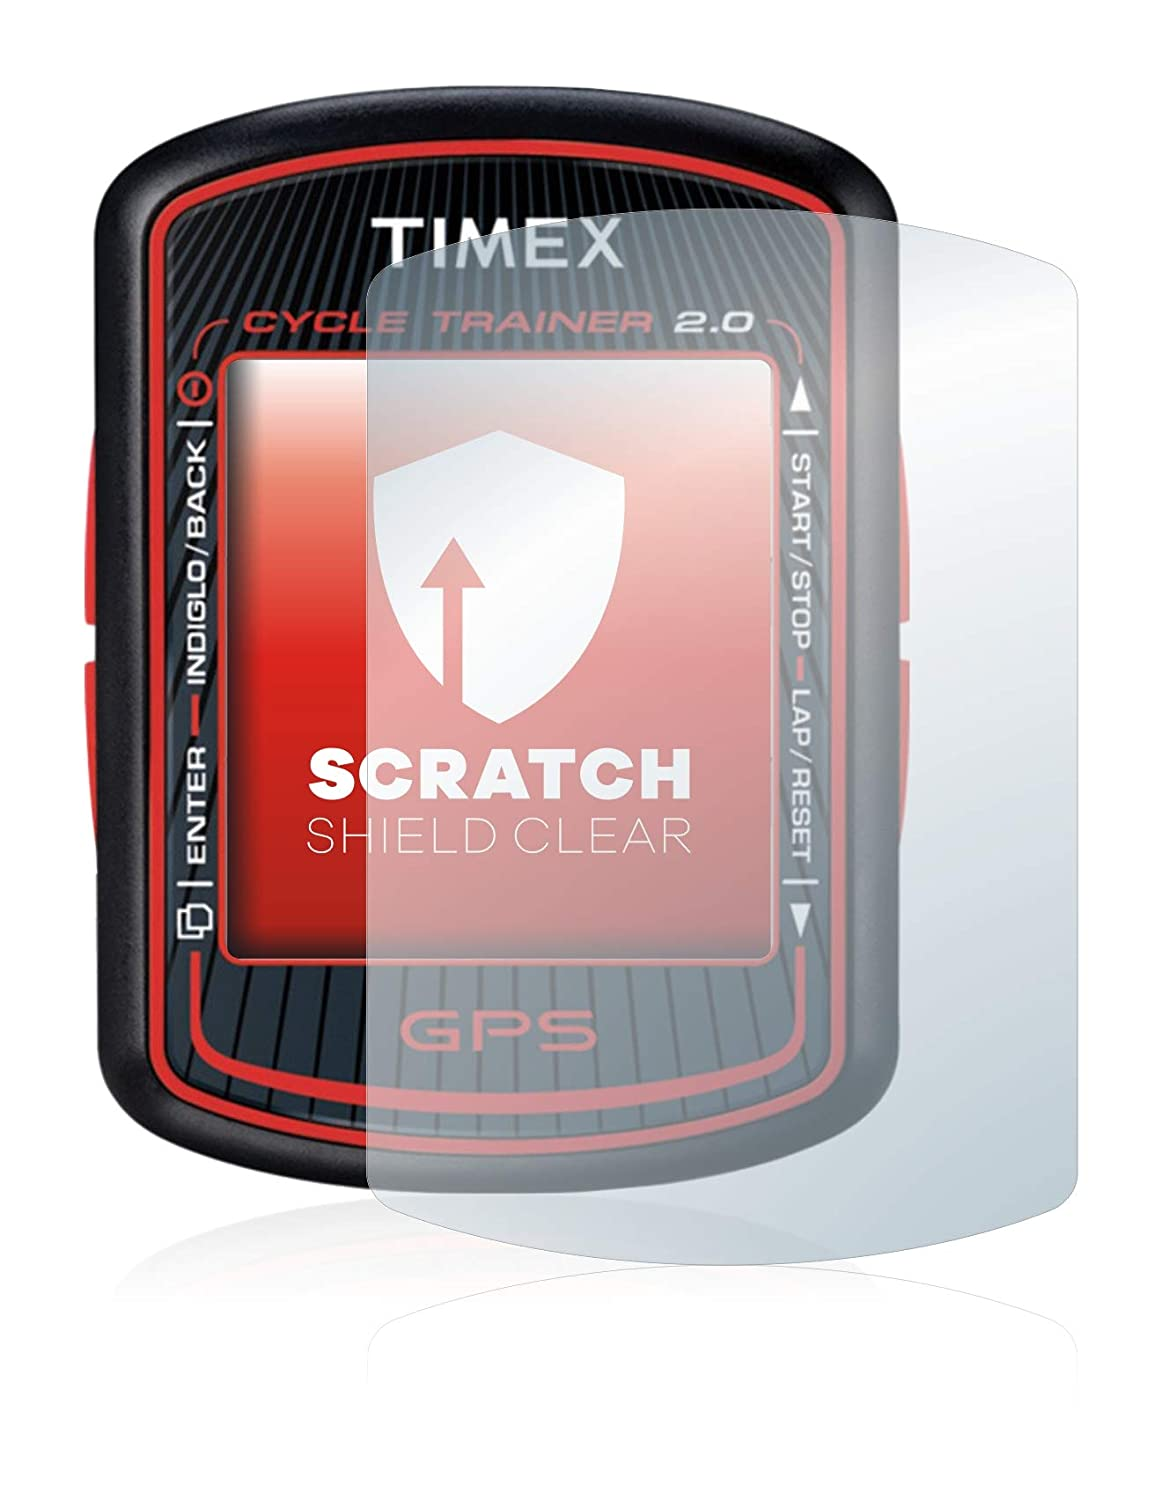 upscreen Protector Pantalla Compatible con Timex Cycle Trainer 2.0 ...